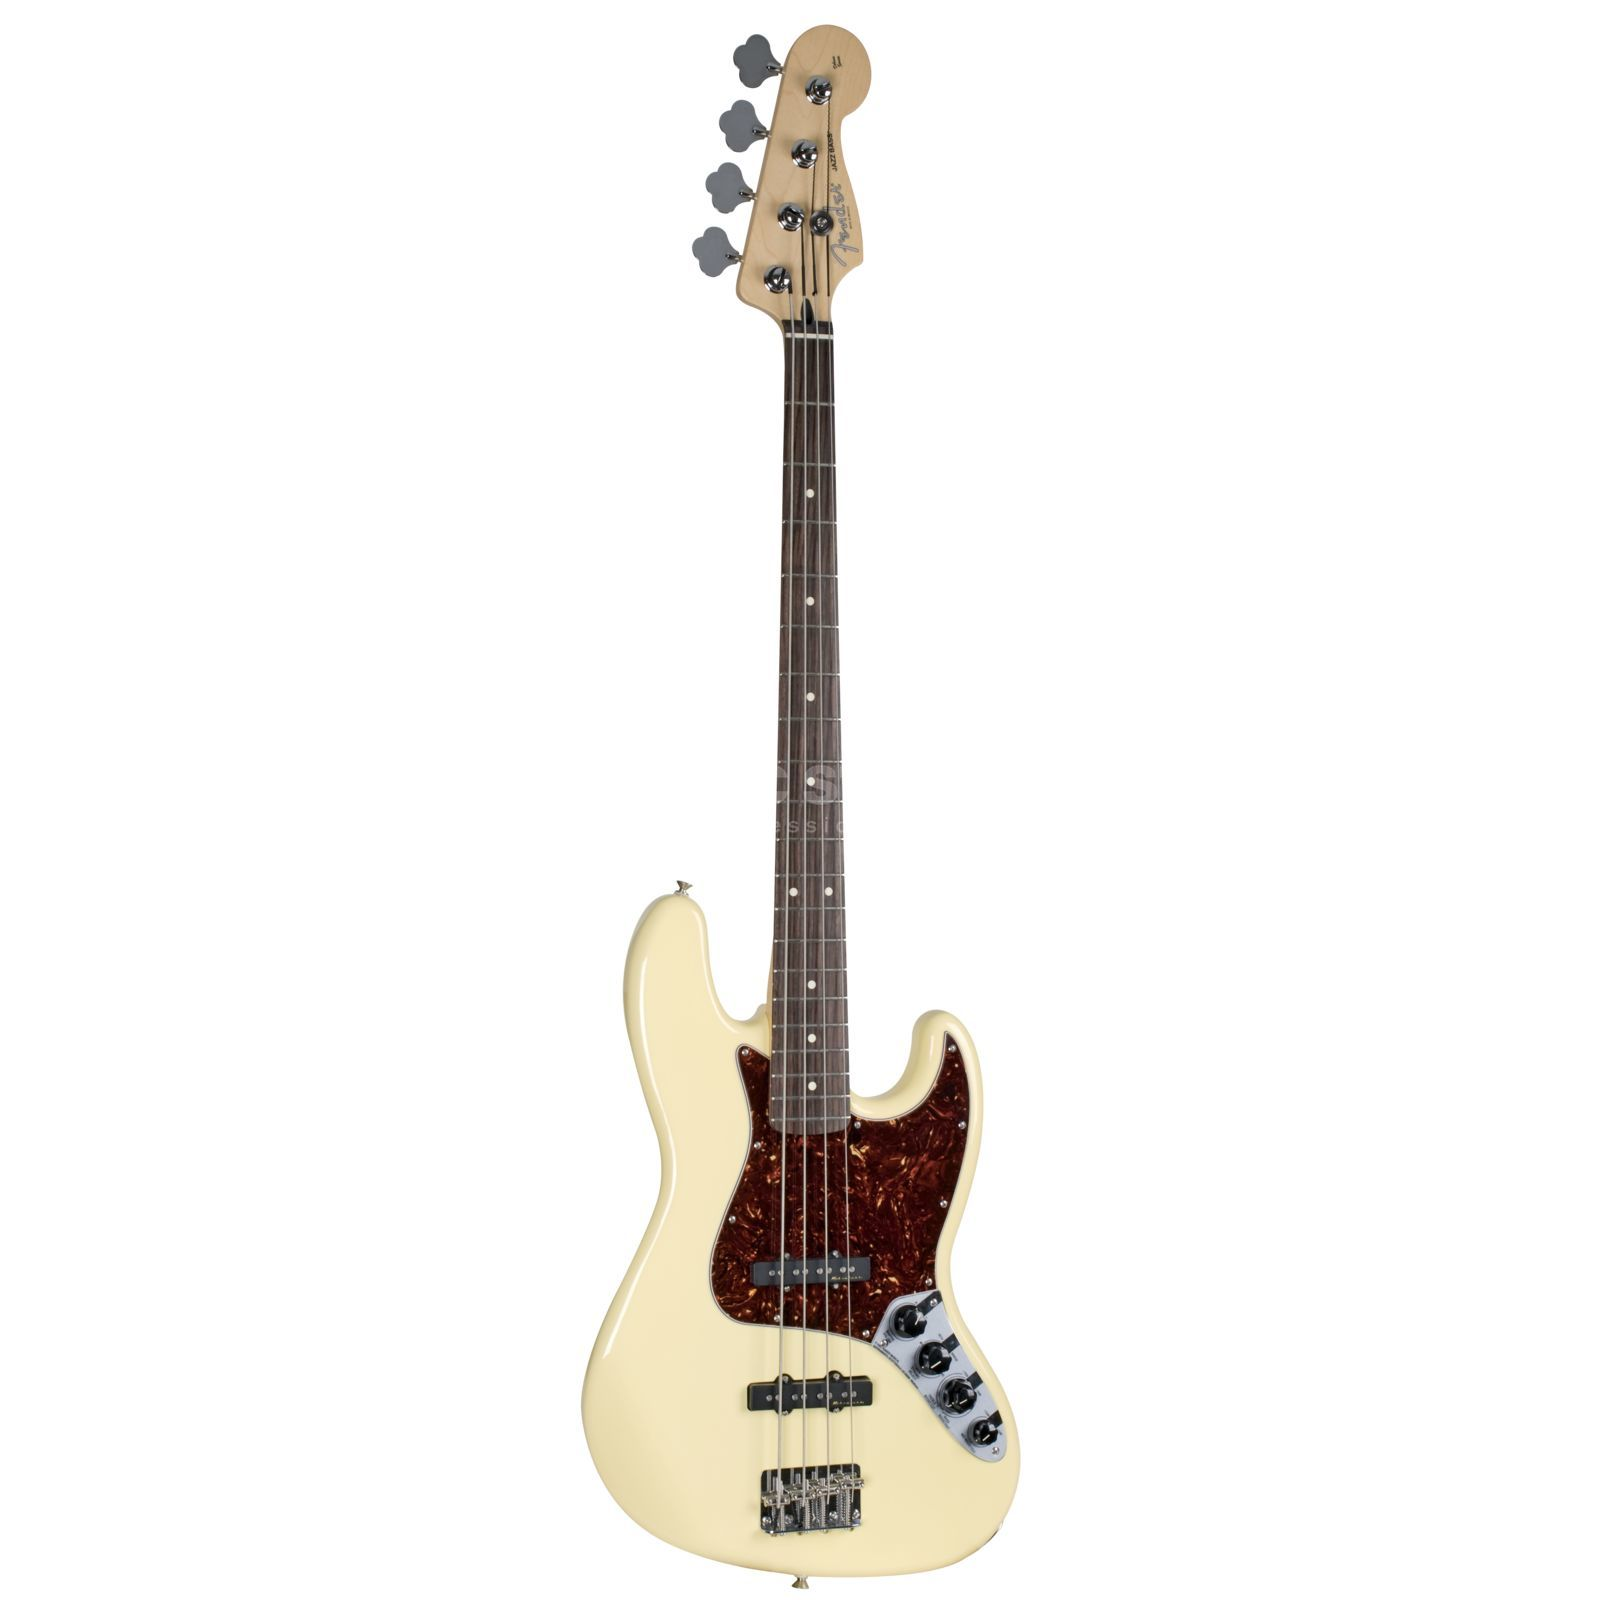 Fender Deluxe Active Jazz Bass RW Vintage White Изображение товара